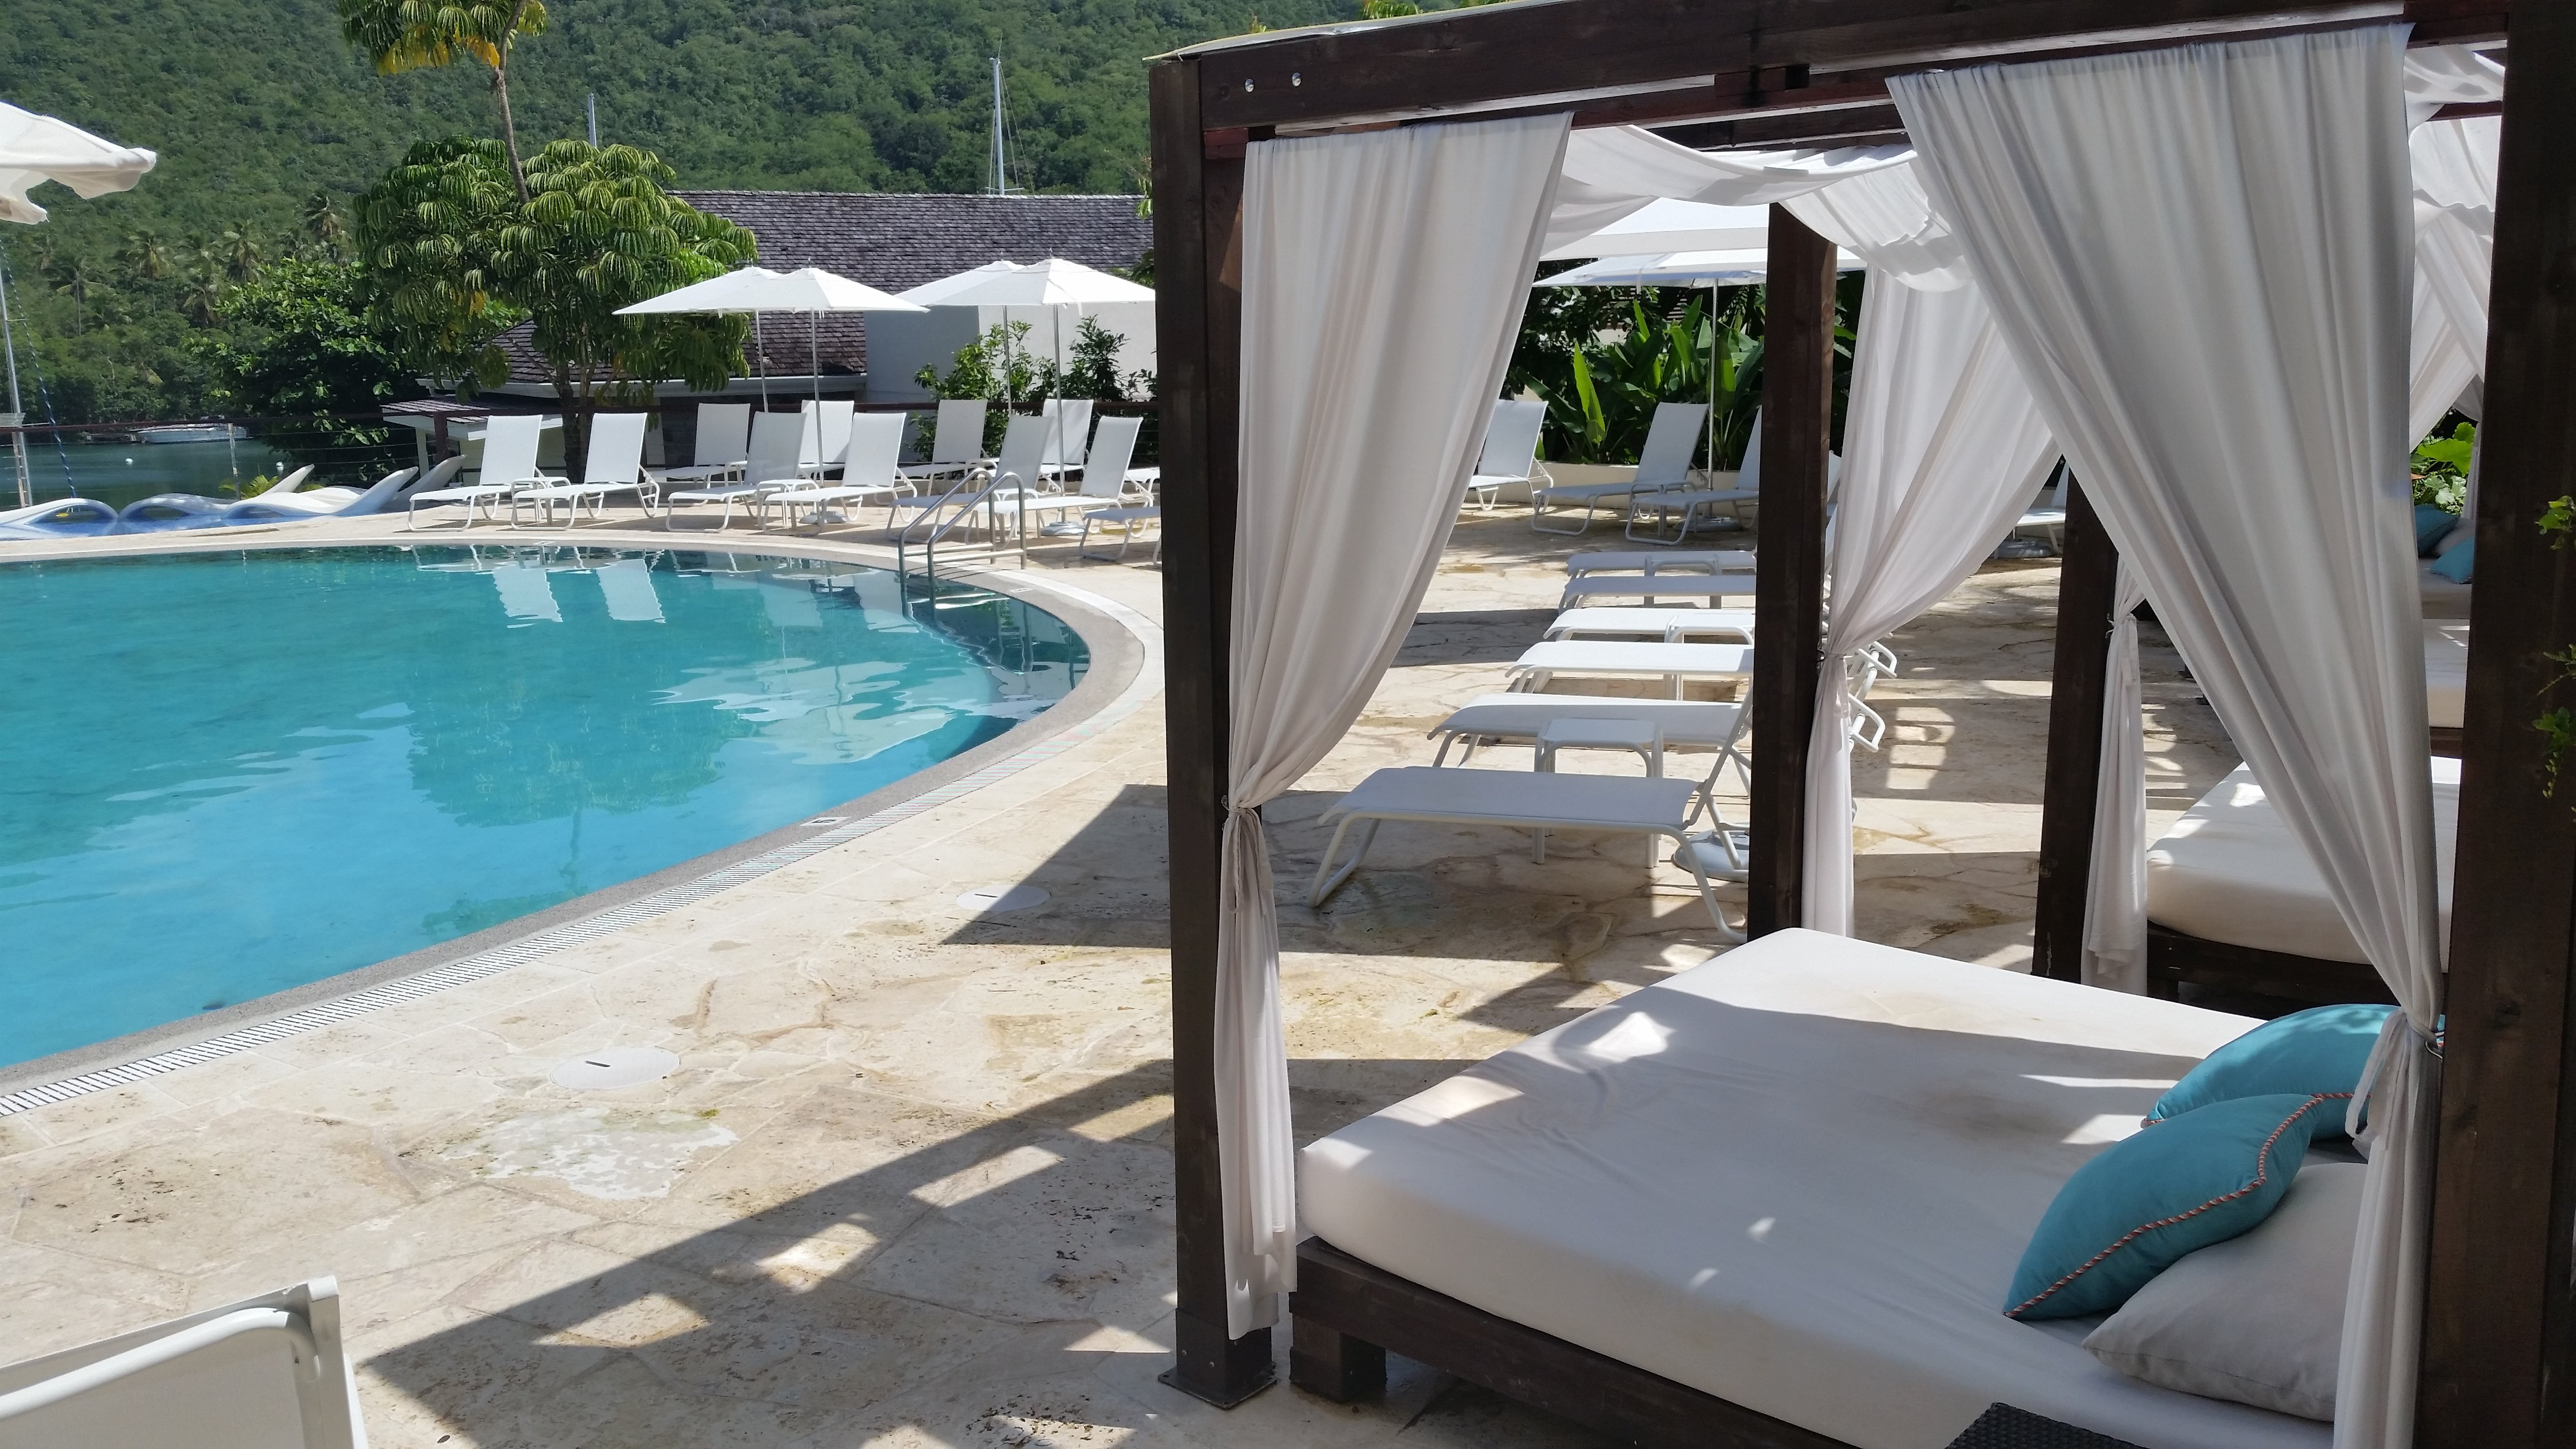 On Marigot Bay, Capella Resort offers Luxury and Peace